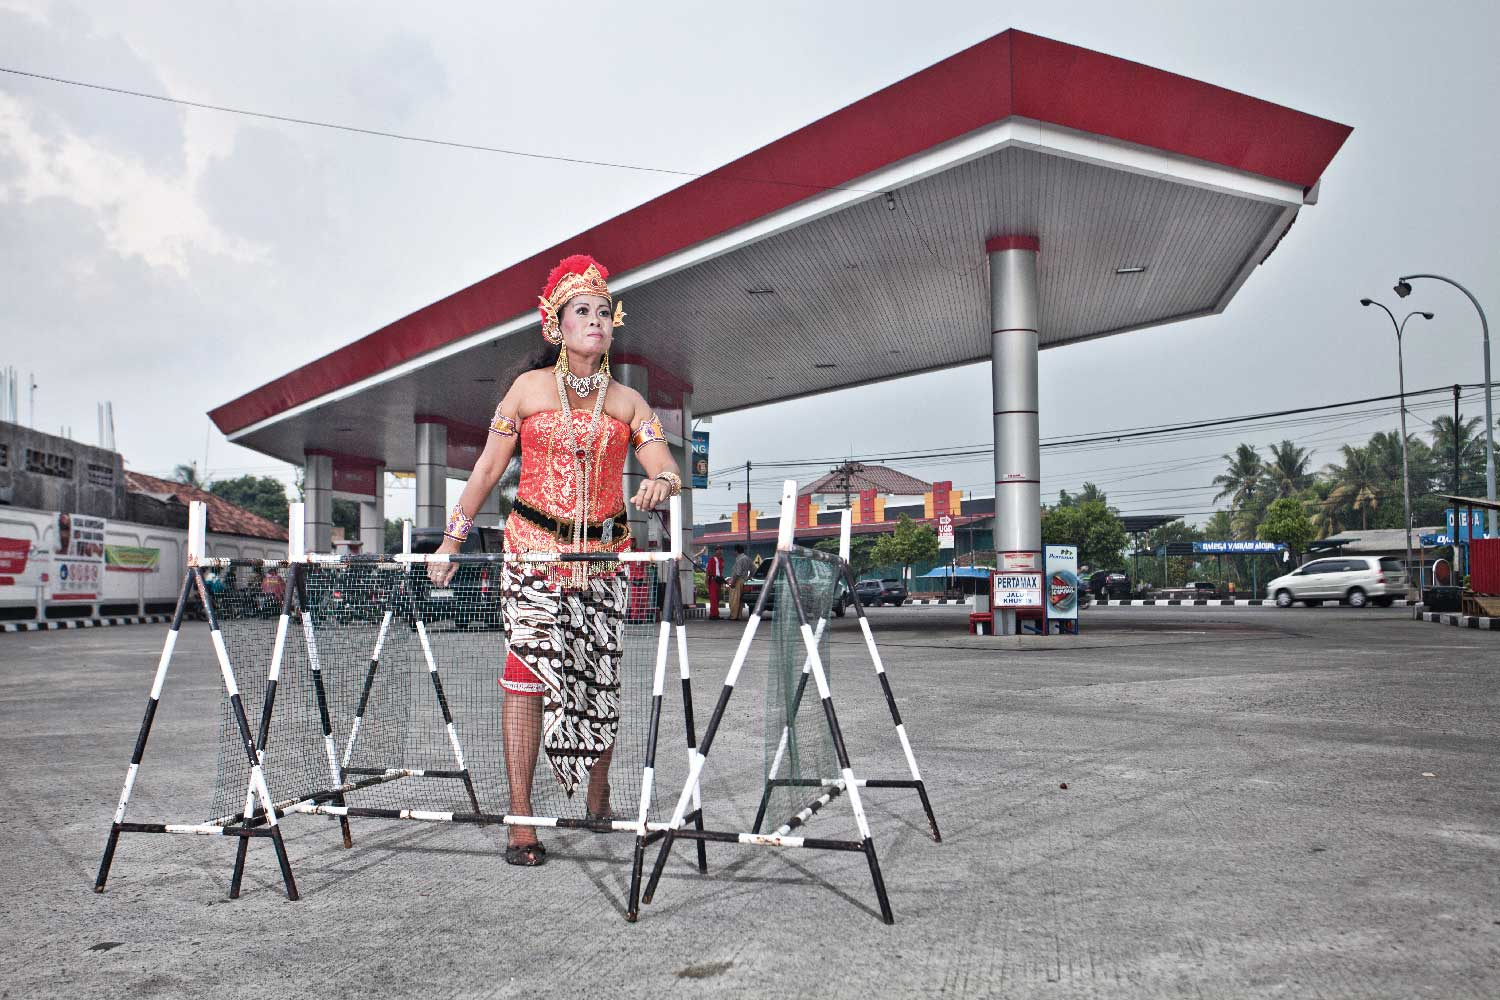 Helen Marshall and Risang Yuwono, GAS STATION, 2013